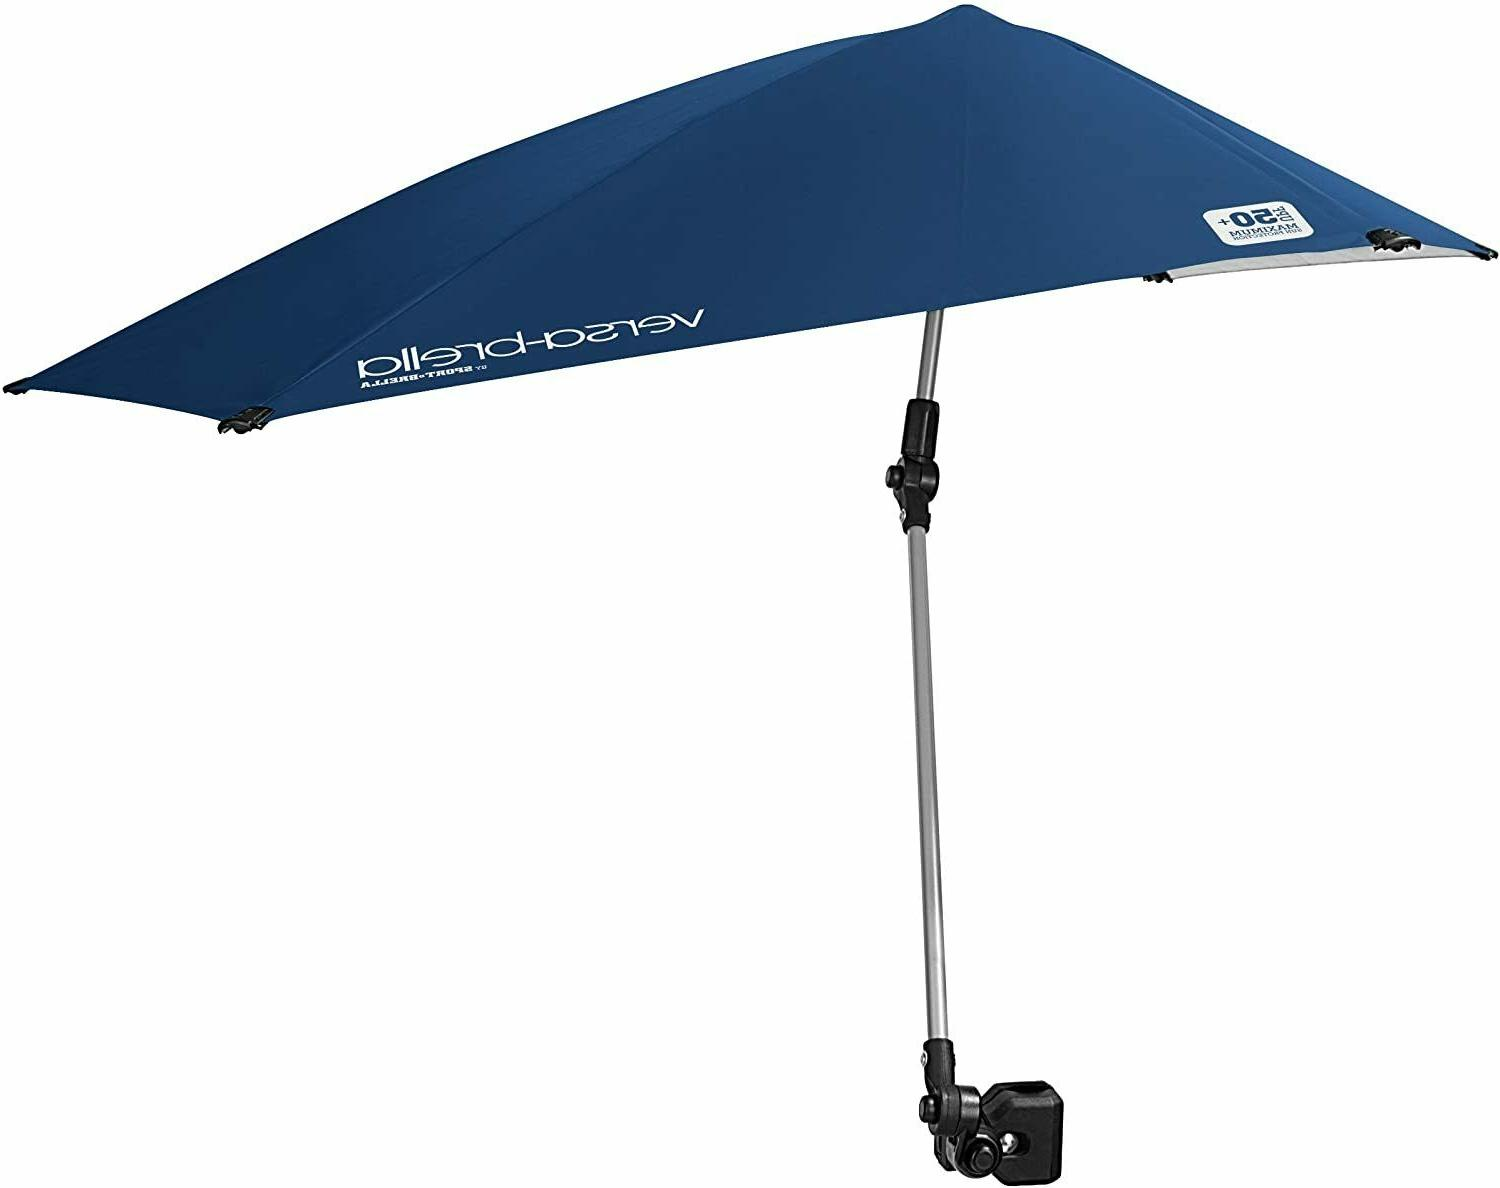 Canopy Umbrella Beach Chair Clamp On Stroller Shade Camping Tent